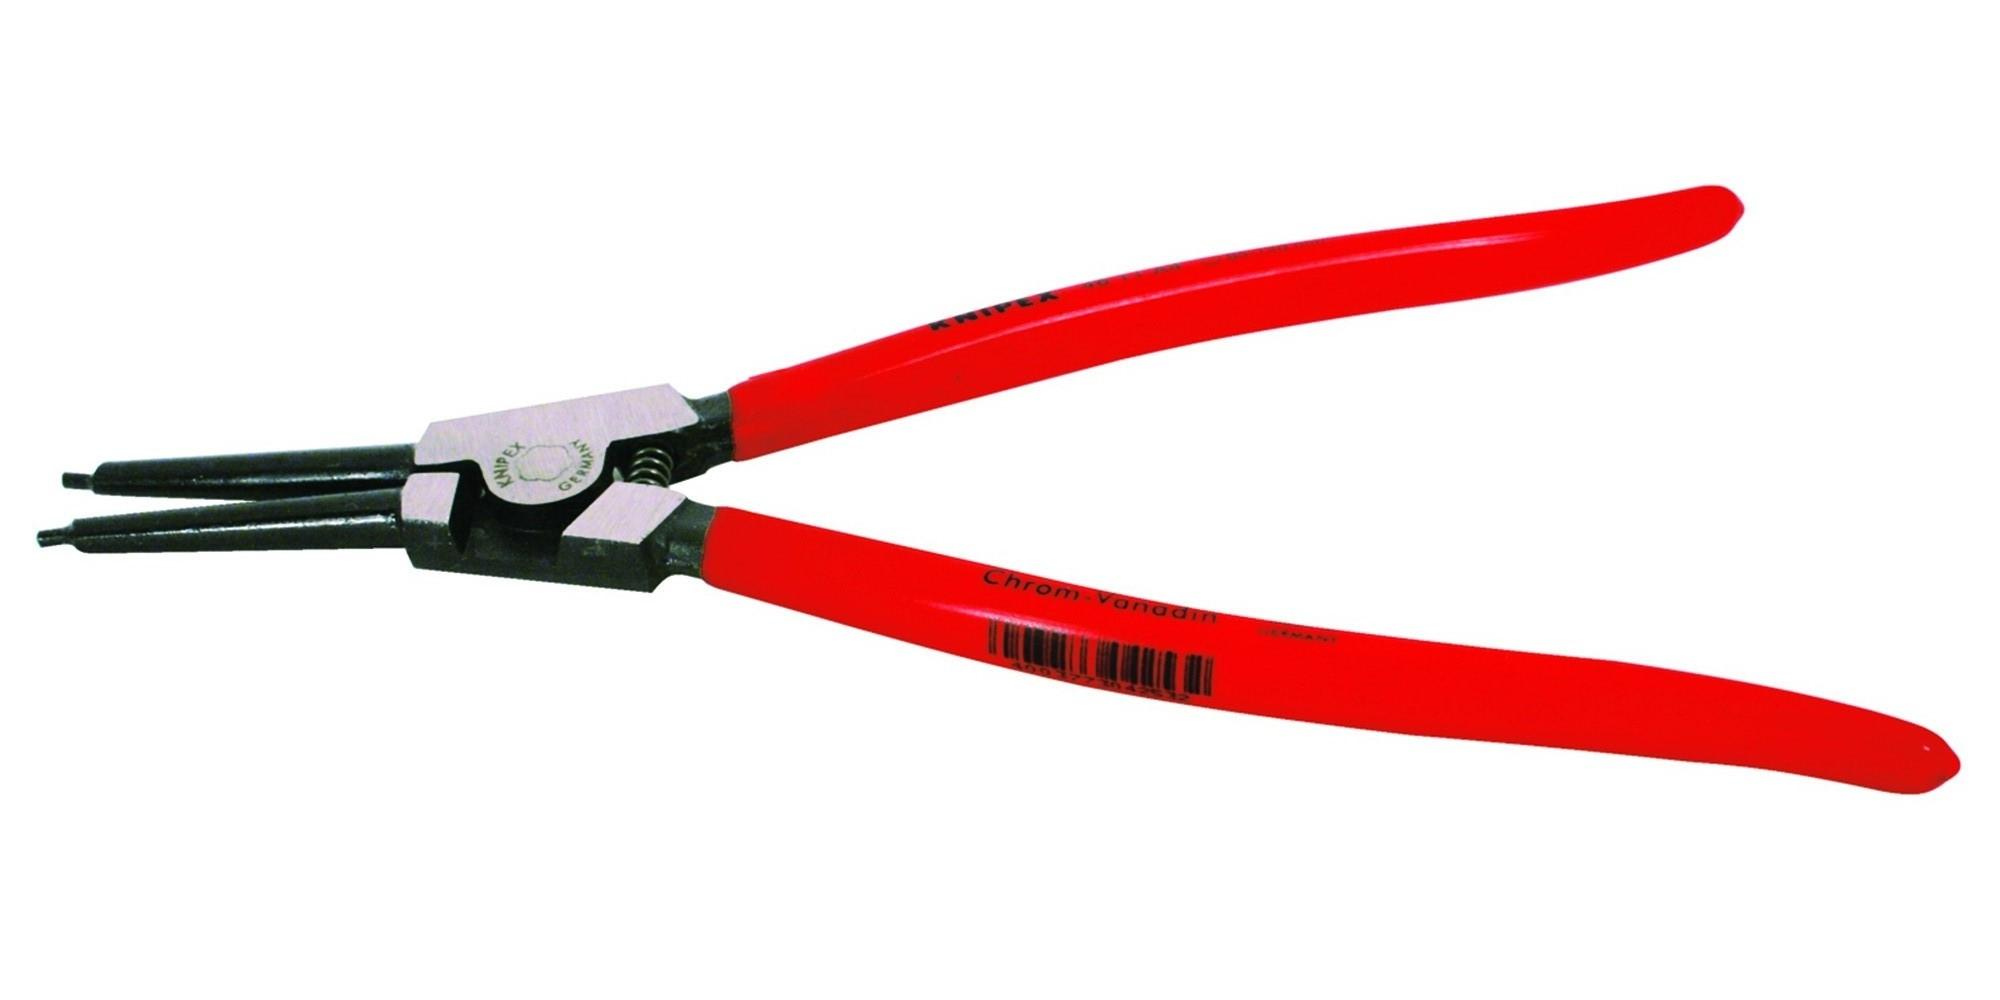 knipex 4611a4sba external straight retaining ring pliers. Black Bedroom Furniture Sets. Home Design Ideas